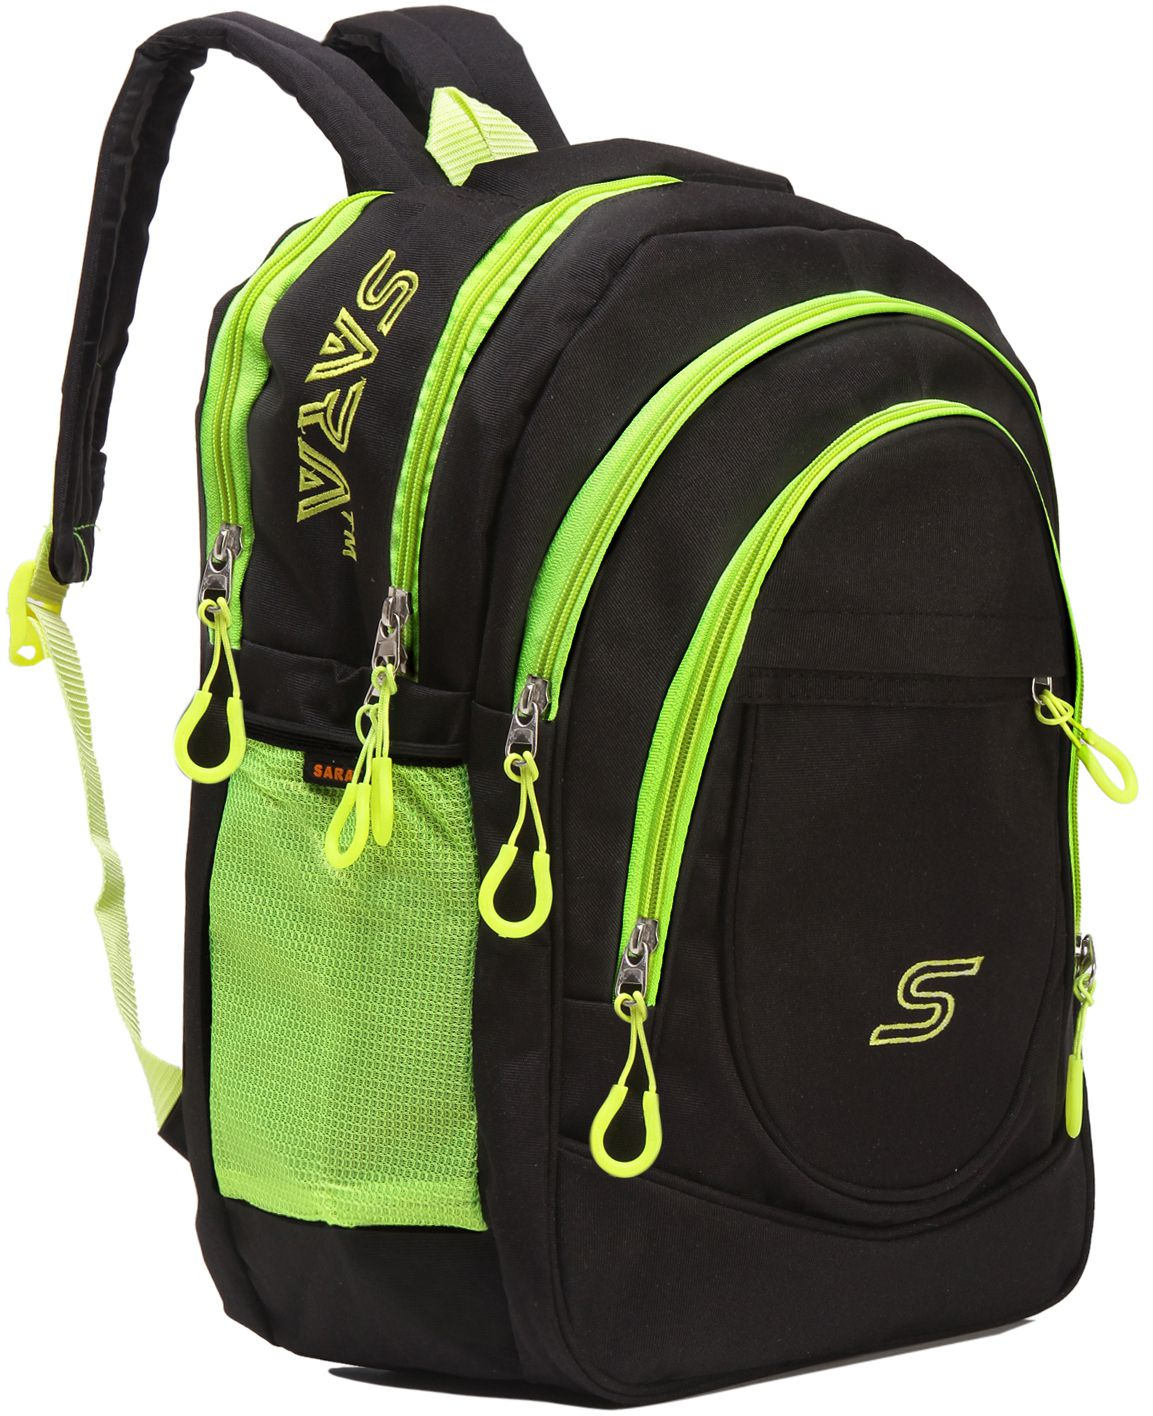 f4a094f7dbb College Bags Online Shopping Low Price | City of Kenmore, Washington